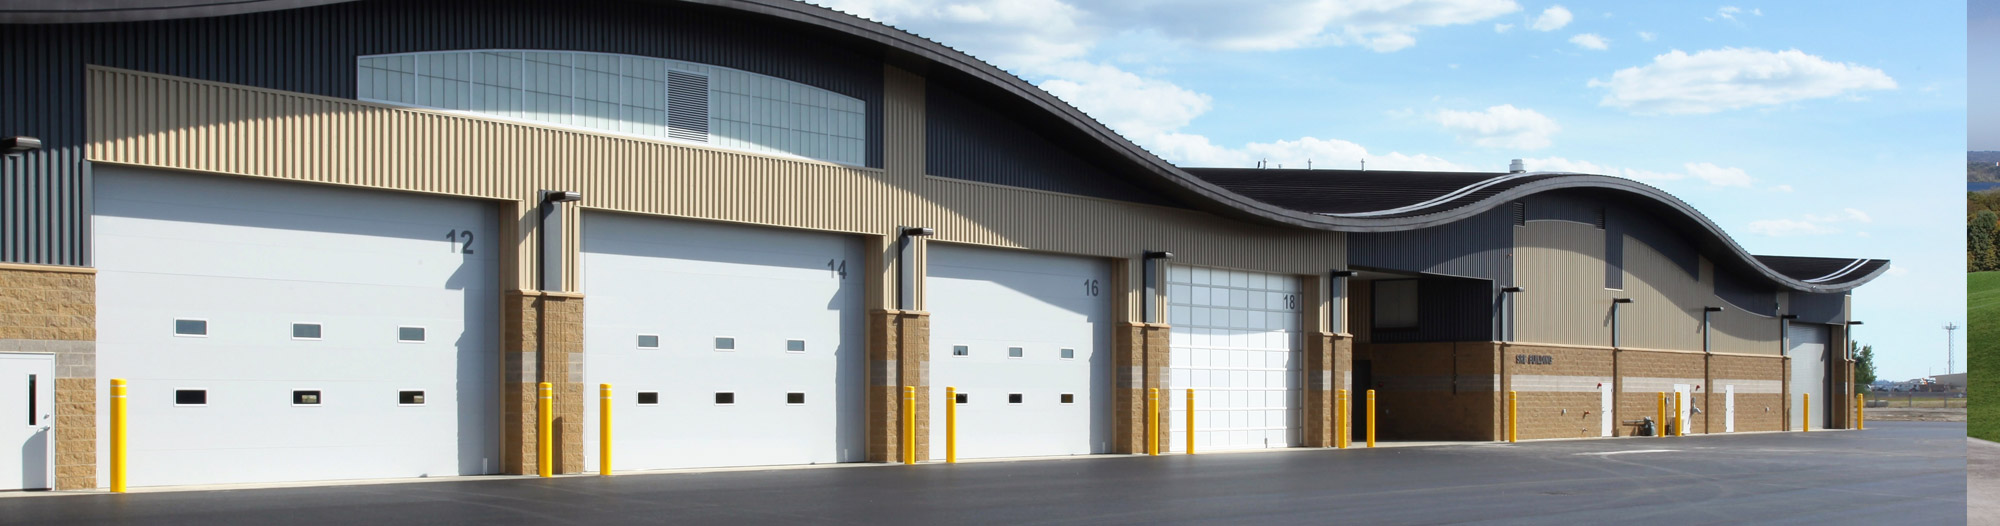 Commercial garage door products tf draper garage doors for Garage door repair salem oregon